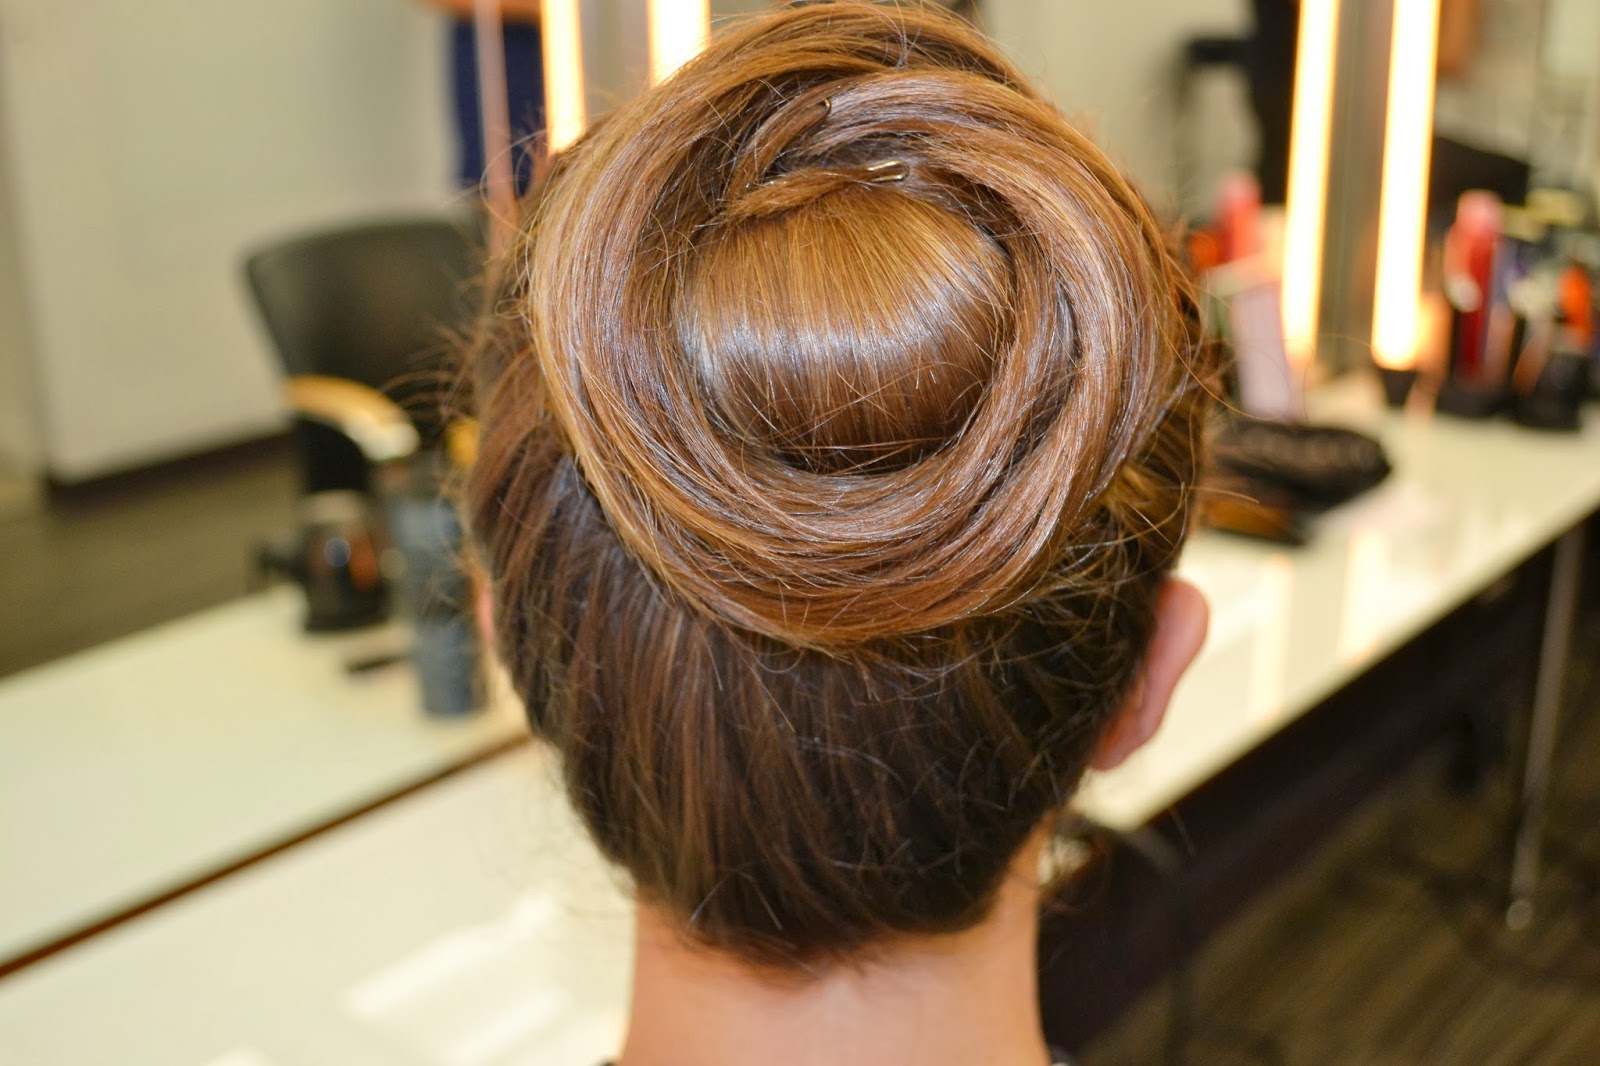 Choosing The Right Hairstyle For Women 50 And All Facial